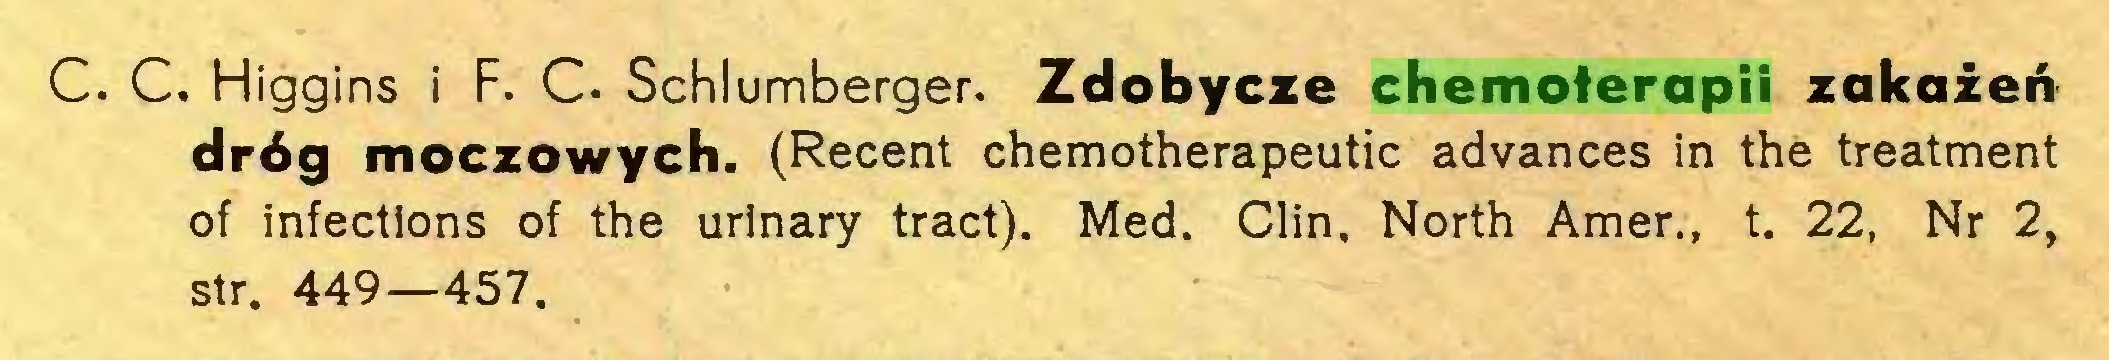 (...) C. C. Higgins i F. C. Schlumberger. Zdobycze chemoterapii zakażeń dróg moczowych. (Recent chemotherapeutic advances in the treatment of infections of the urinary tract). Med. Clin. North Amer., t. 22, Nr 2, str. 449—457...